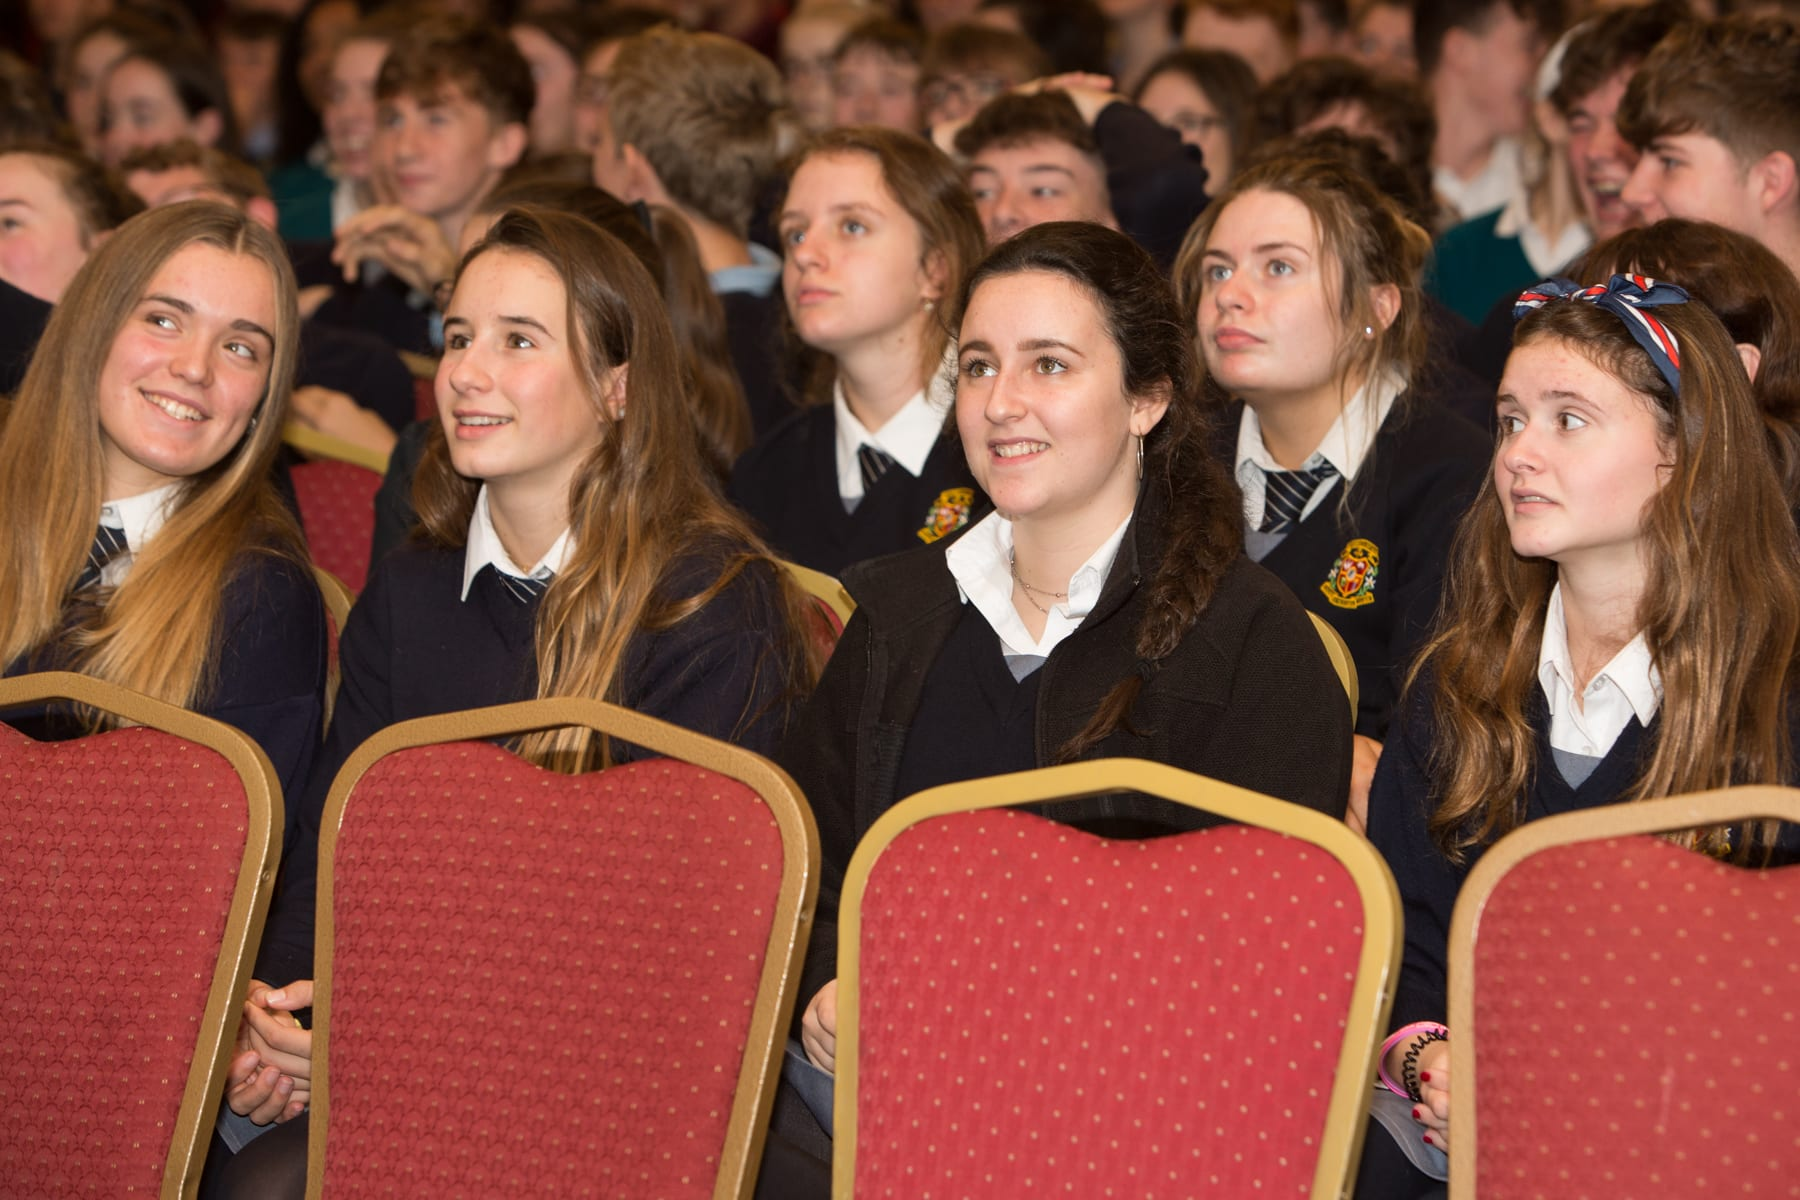 Galway's most enterprising students to battle it out at Student Enterprise County Final